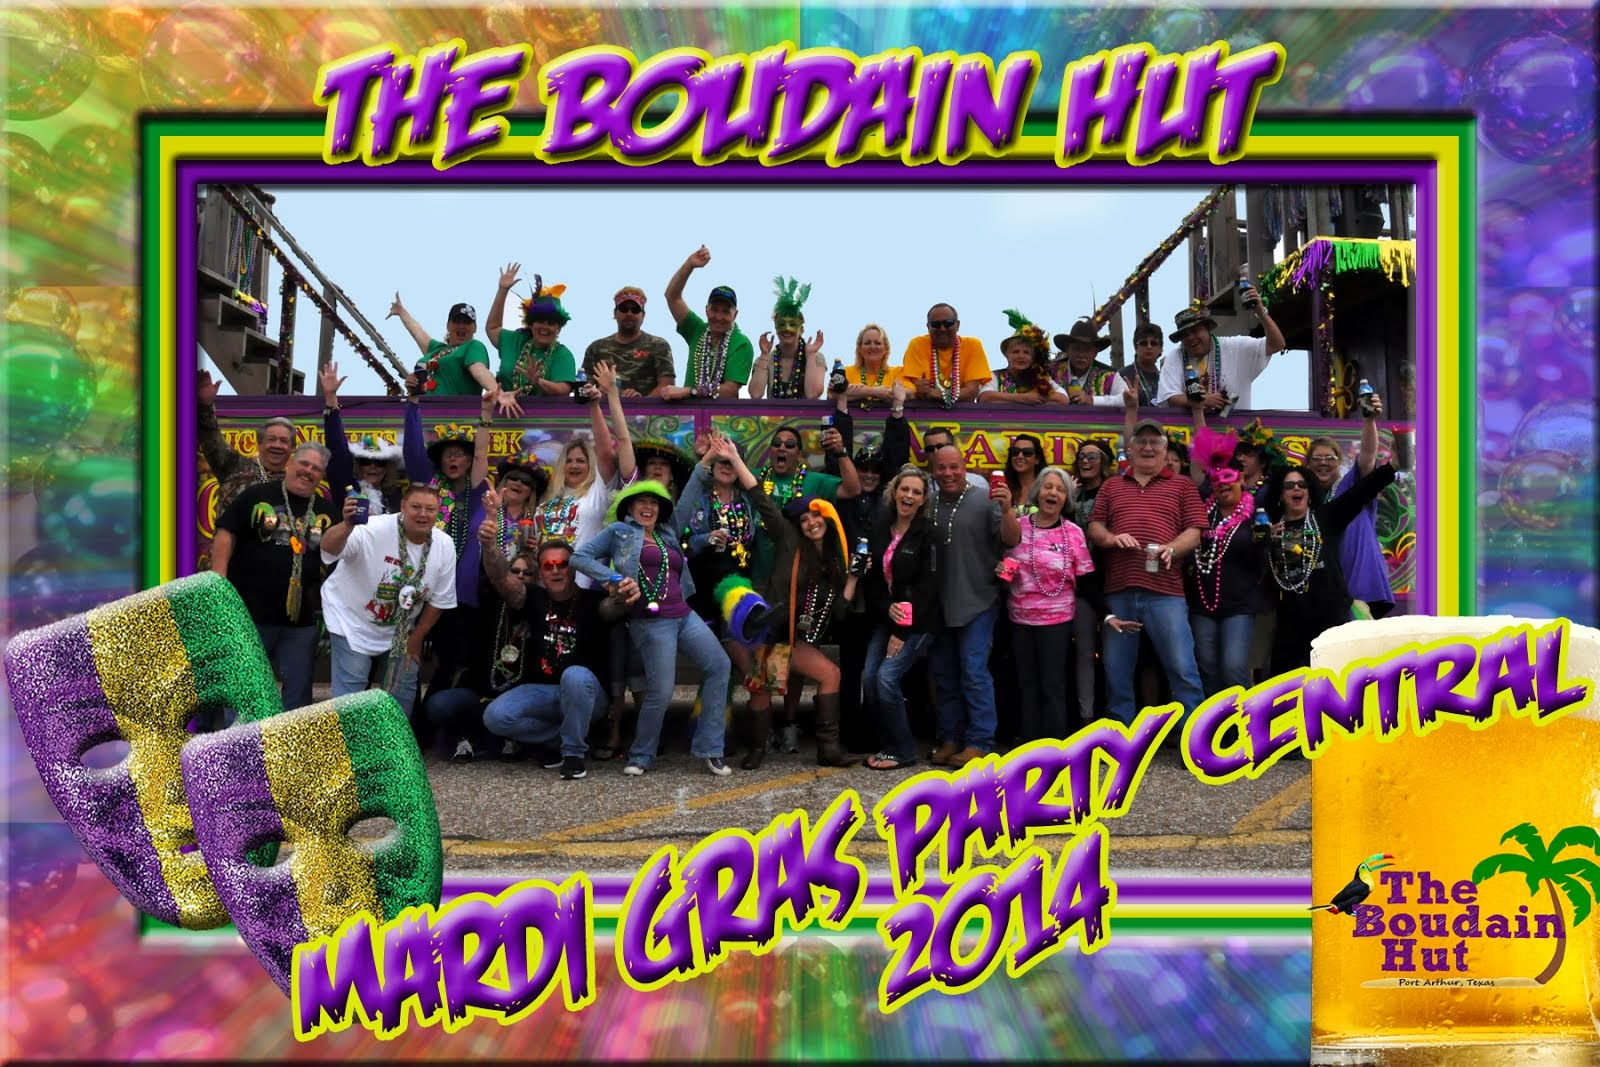 Check Out our Mardi Gras Pics!